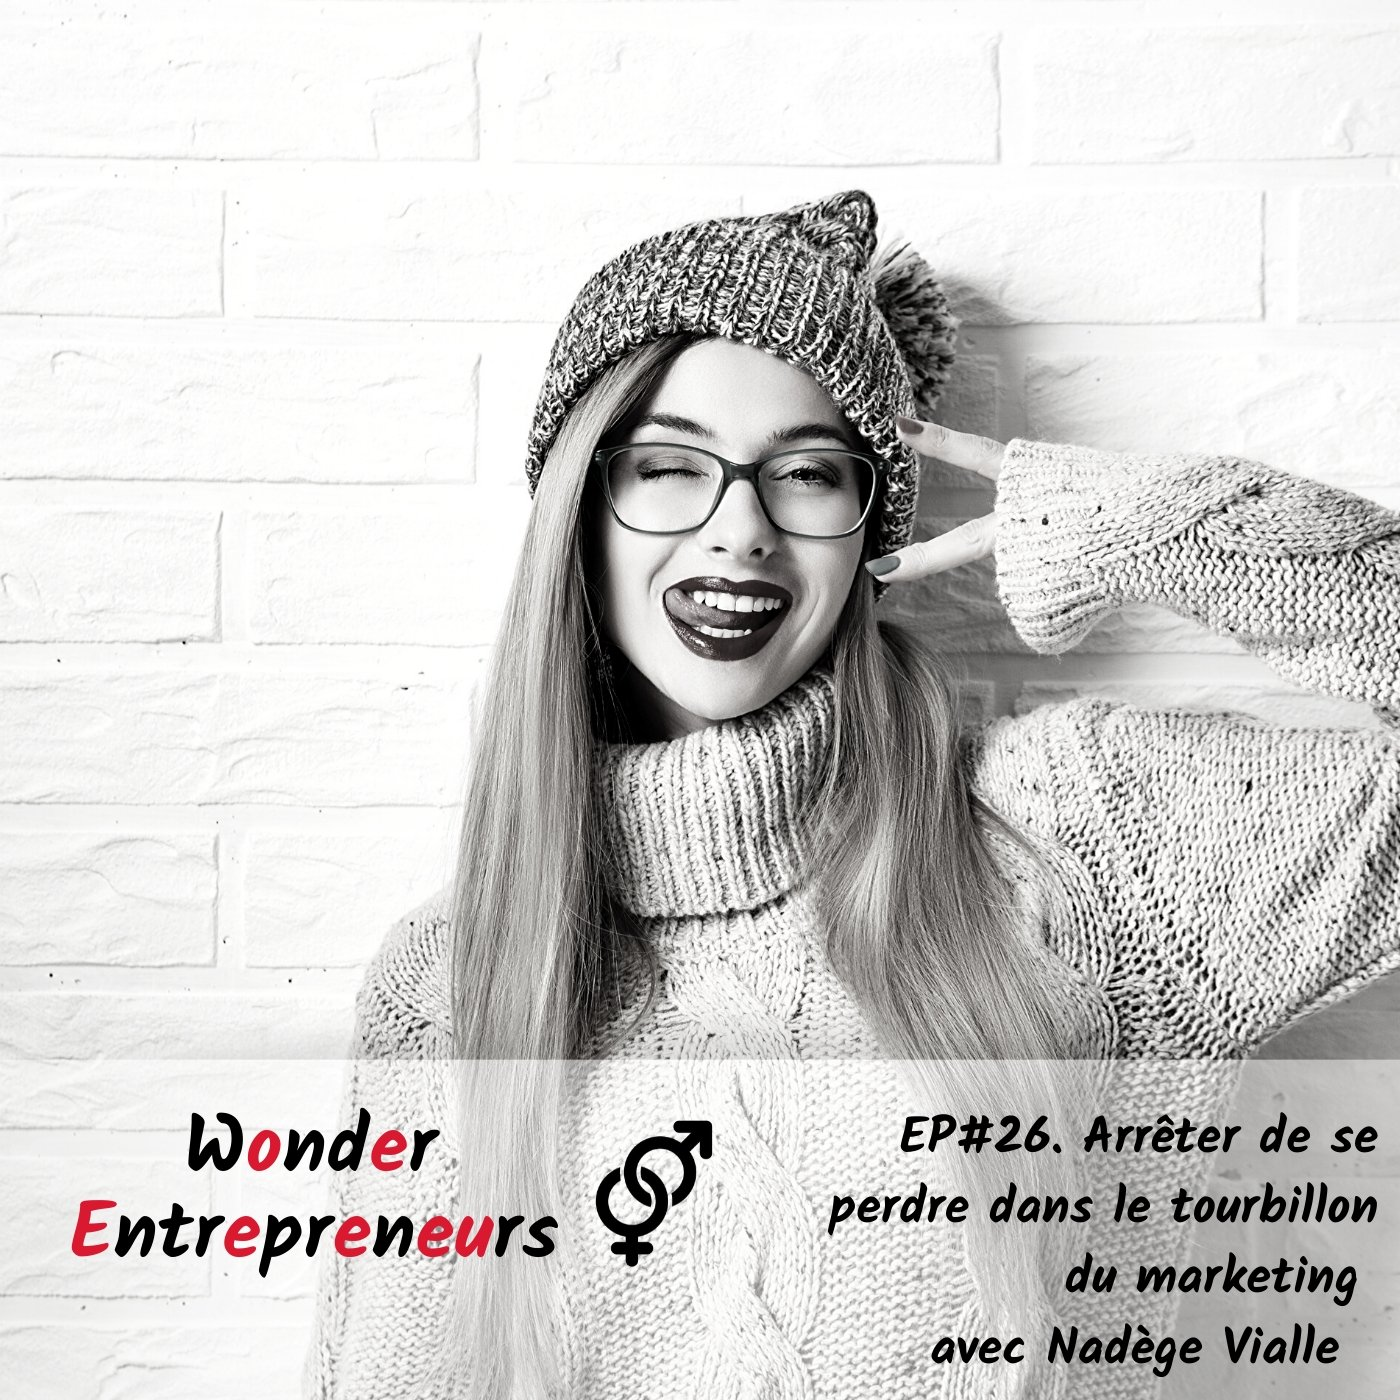 Ep 26 Podcast Wonder Entrepreneurs Arreter de se perdre dans le tourbillon du marketing